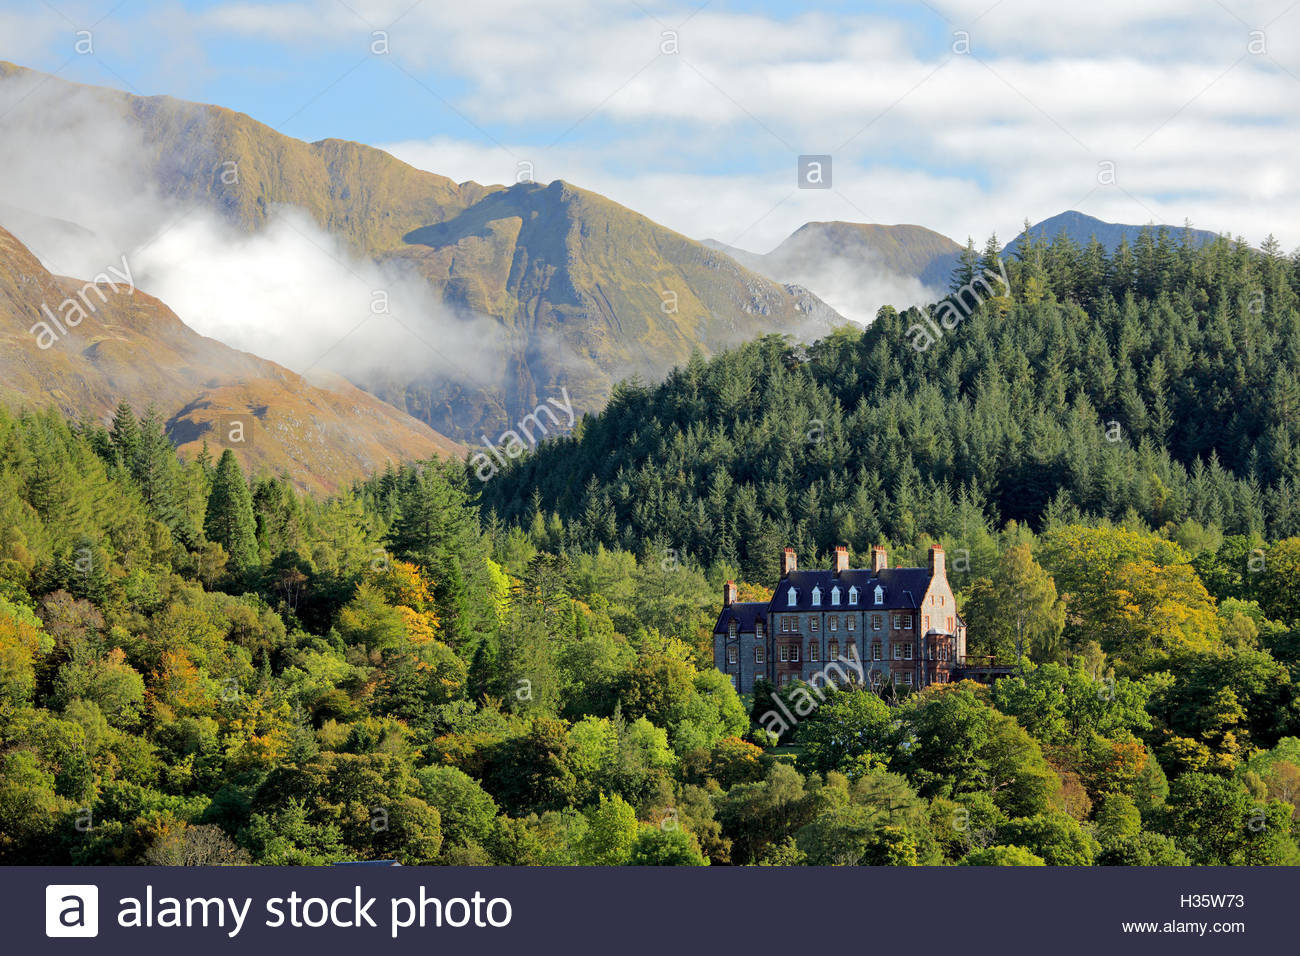 A picturesque view from the shore of Loch Leven looking over to Glencoe house. Ballachulish, Scotland. - Stock Image